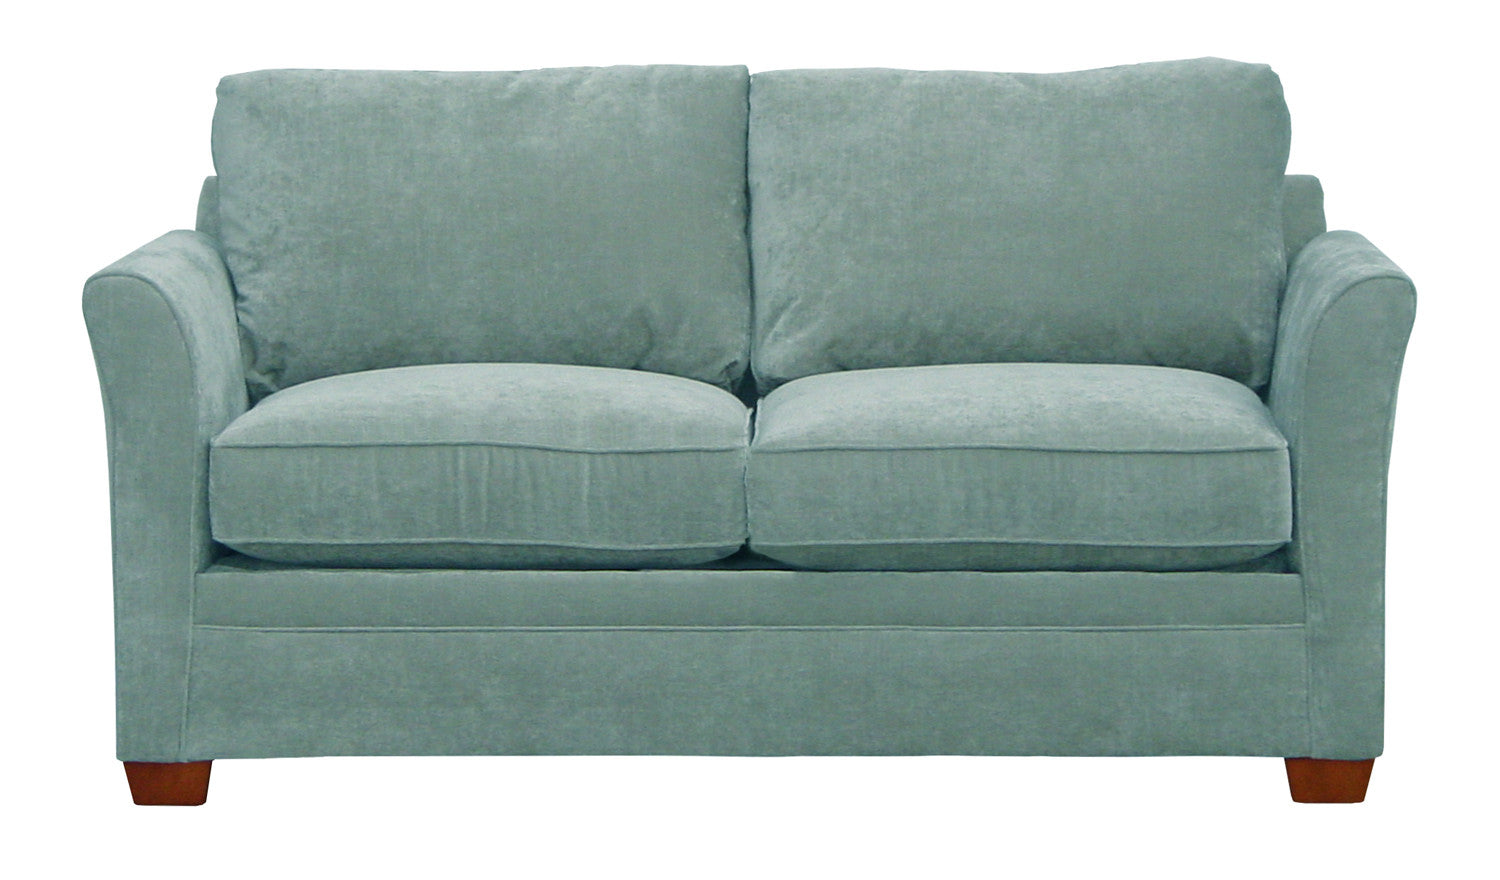 Christy Condo Sofa Non Toxic Christy Condo Sofa At 72